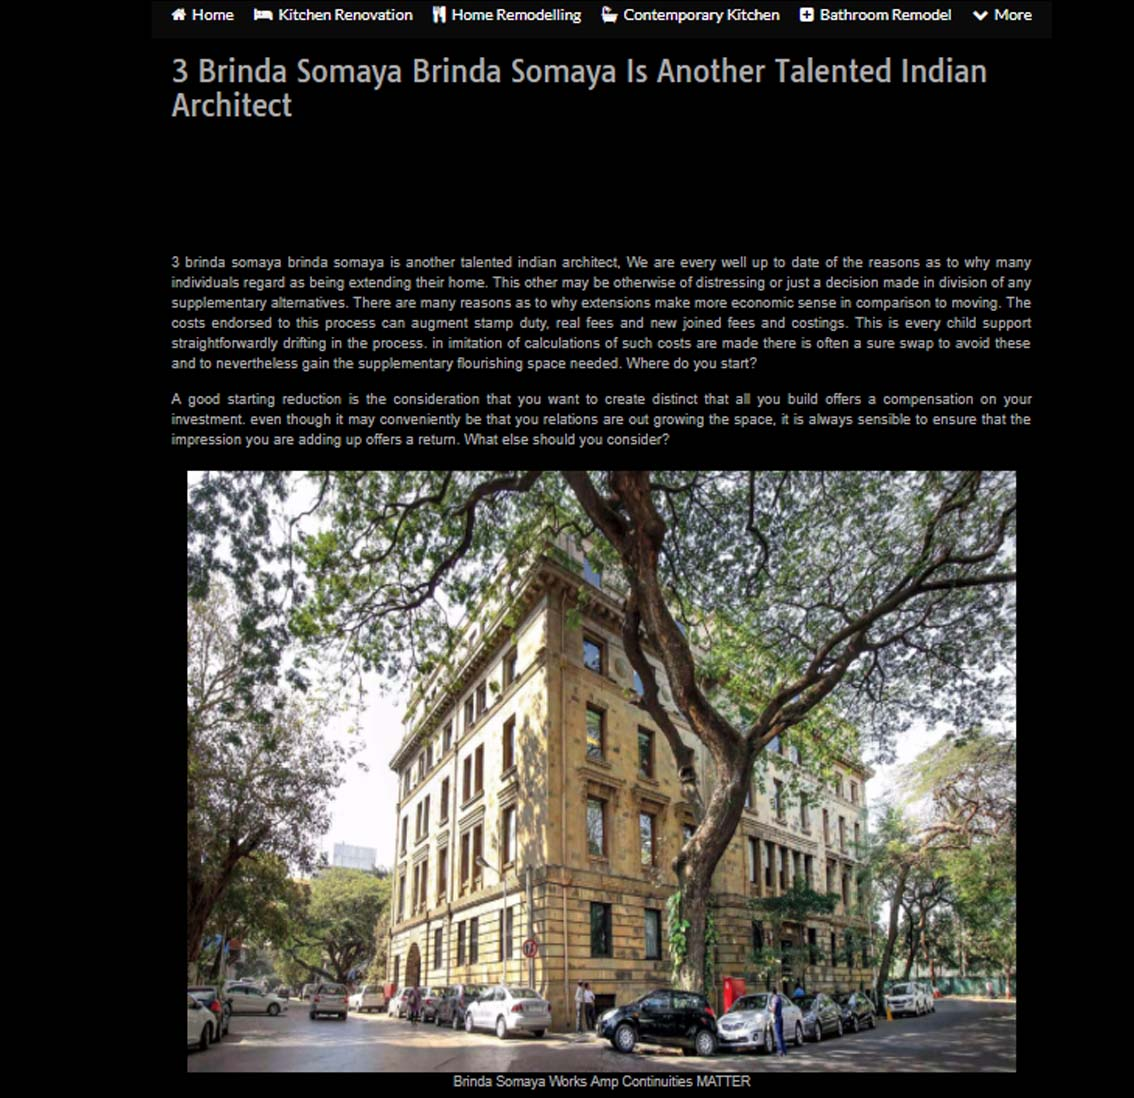 3 Brinda Somaya is Another Talented Indian Architect - 2018